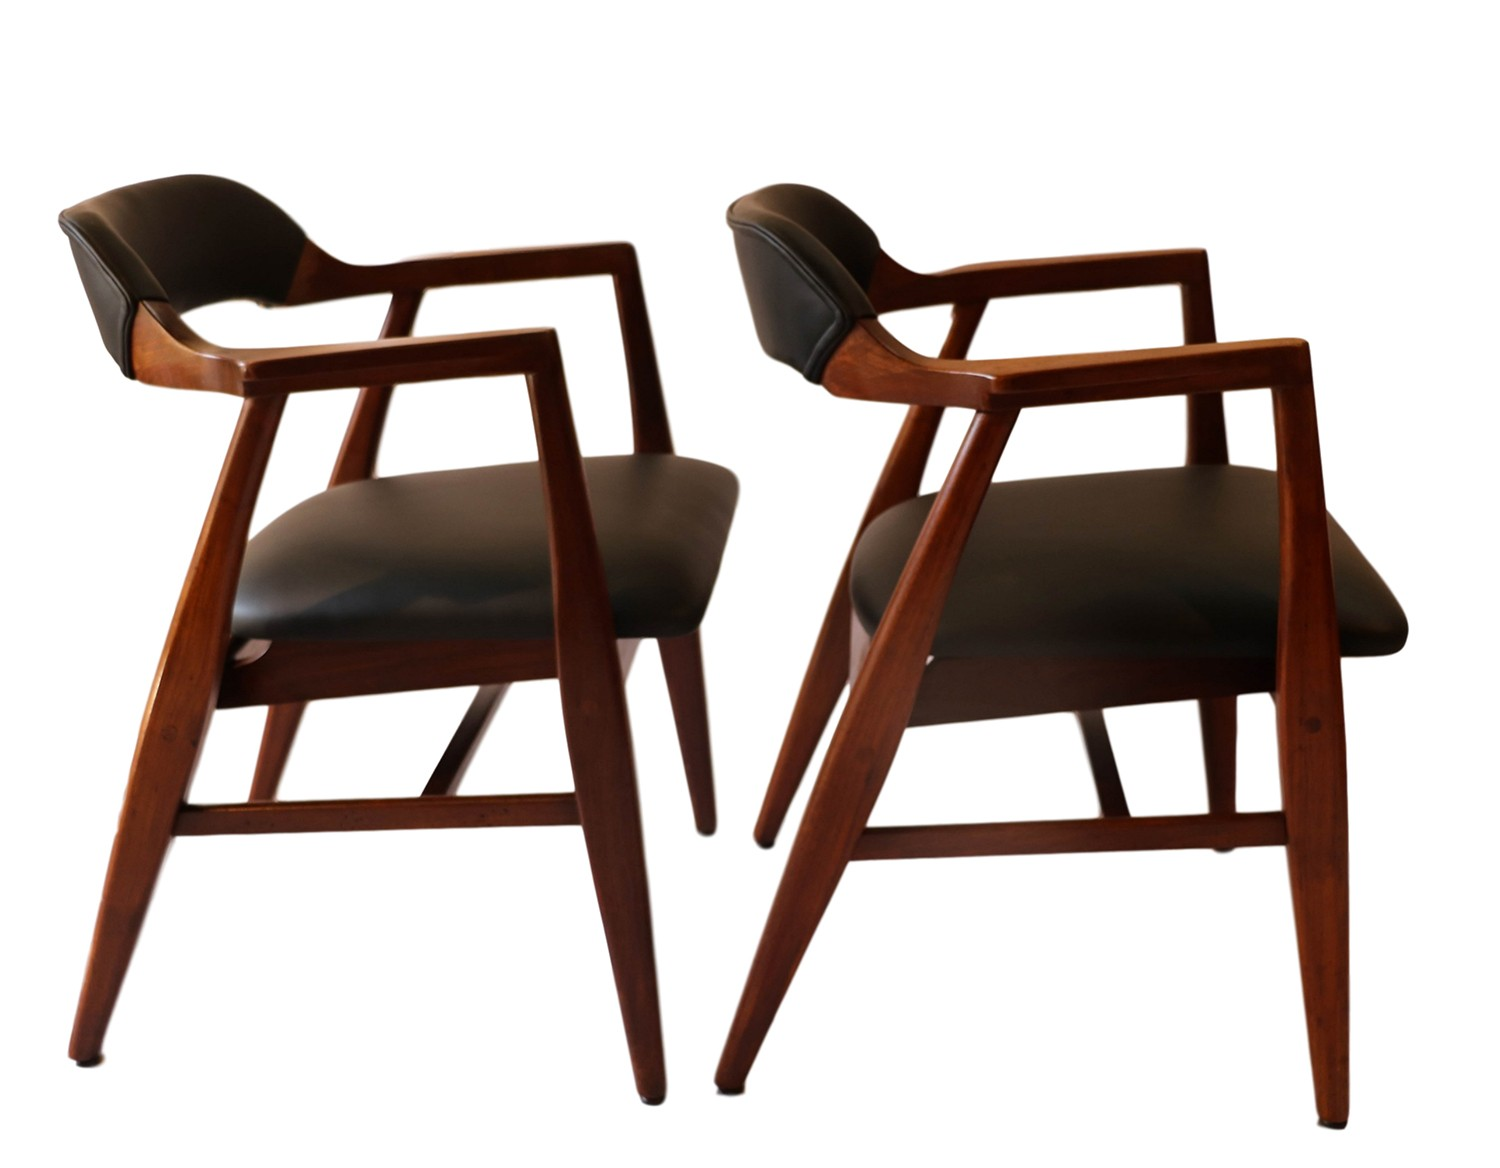 pair mid century modern leather side chairs. Black Bedroom Furniture Sets. Home Design Ideas